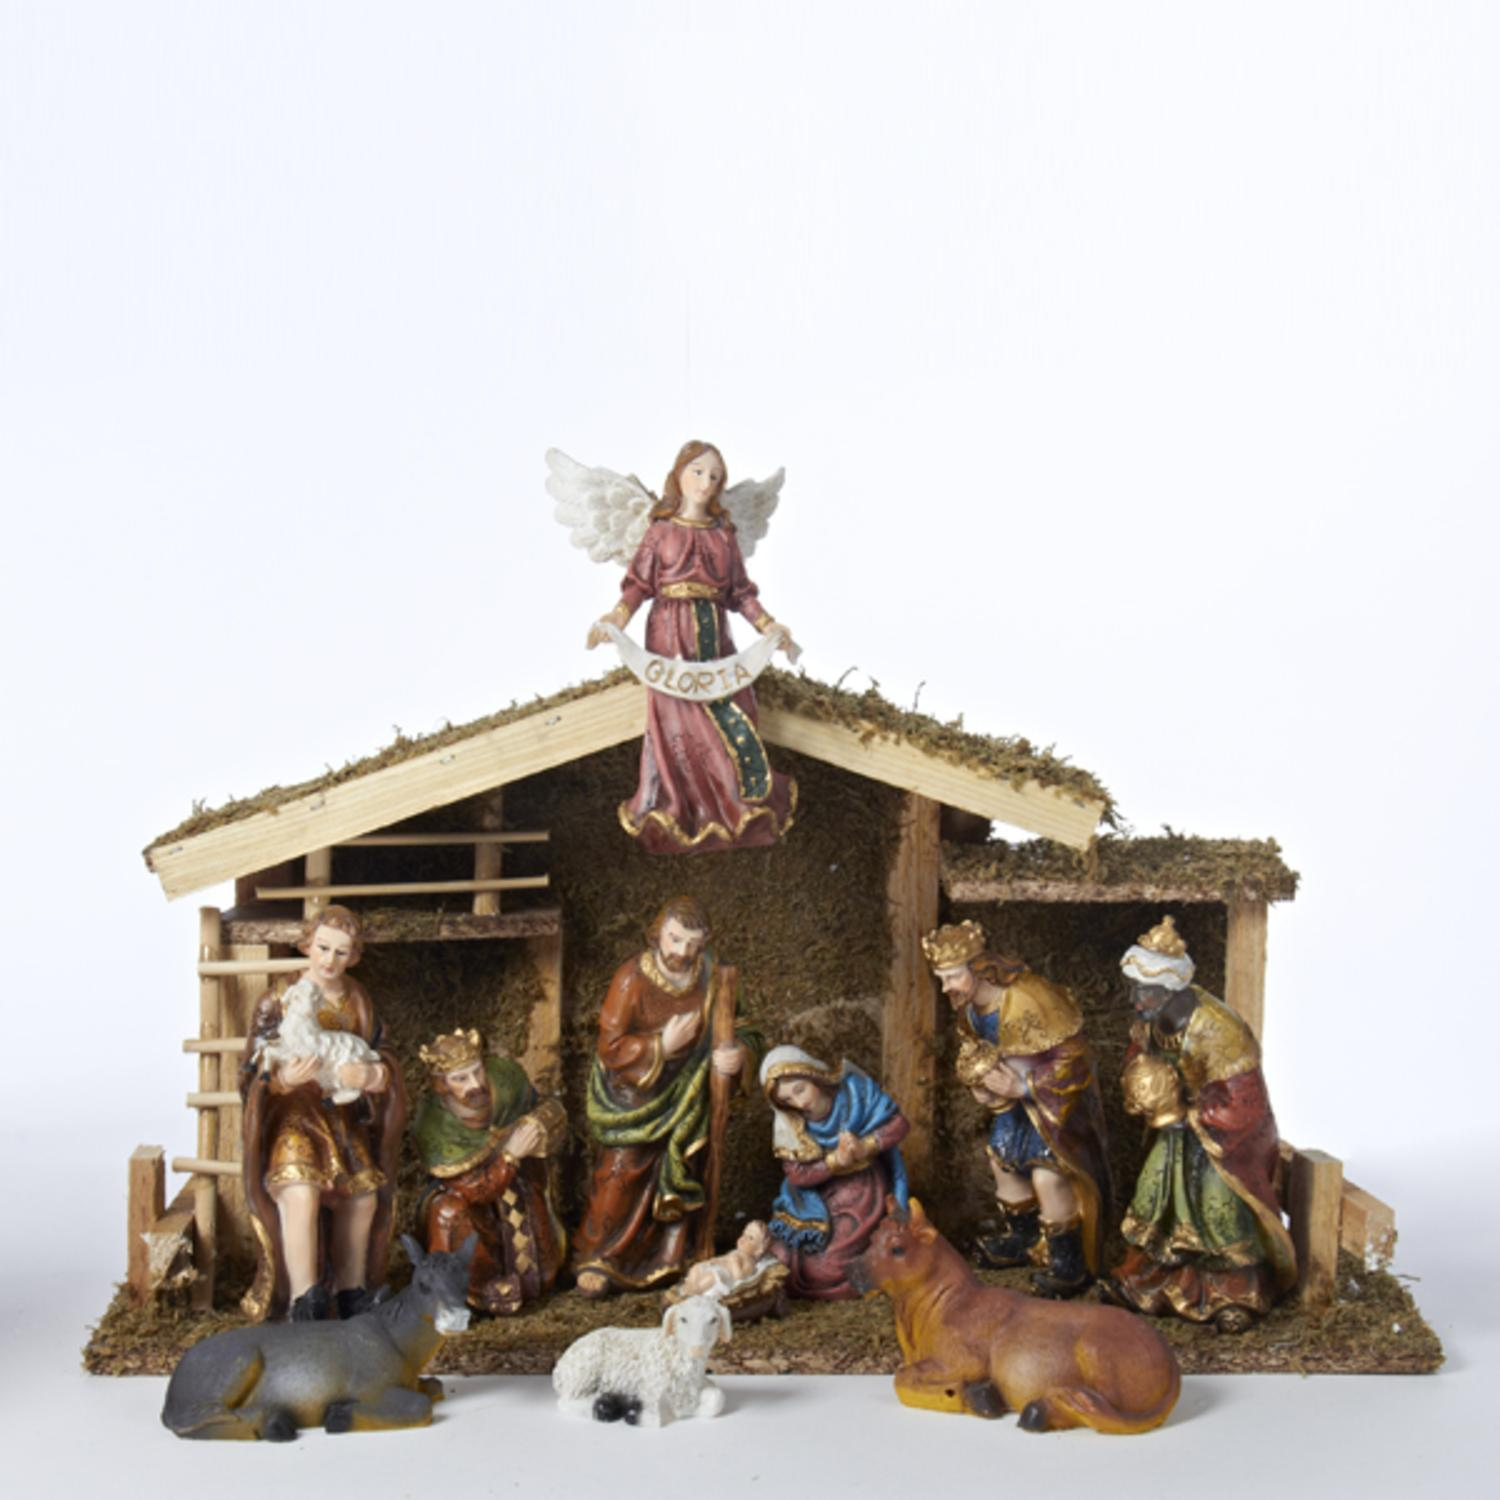 12 Piece Nativity Figures with Wooden Stable 1.5-6""